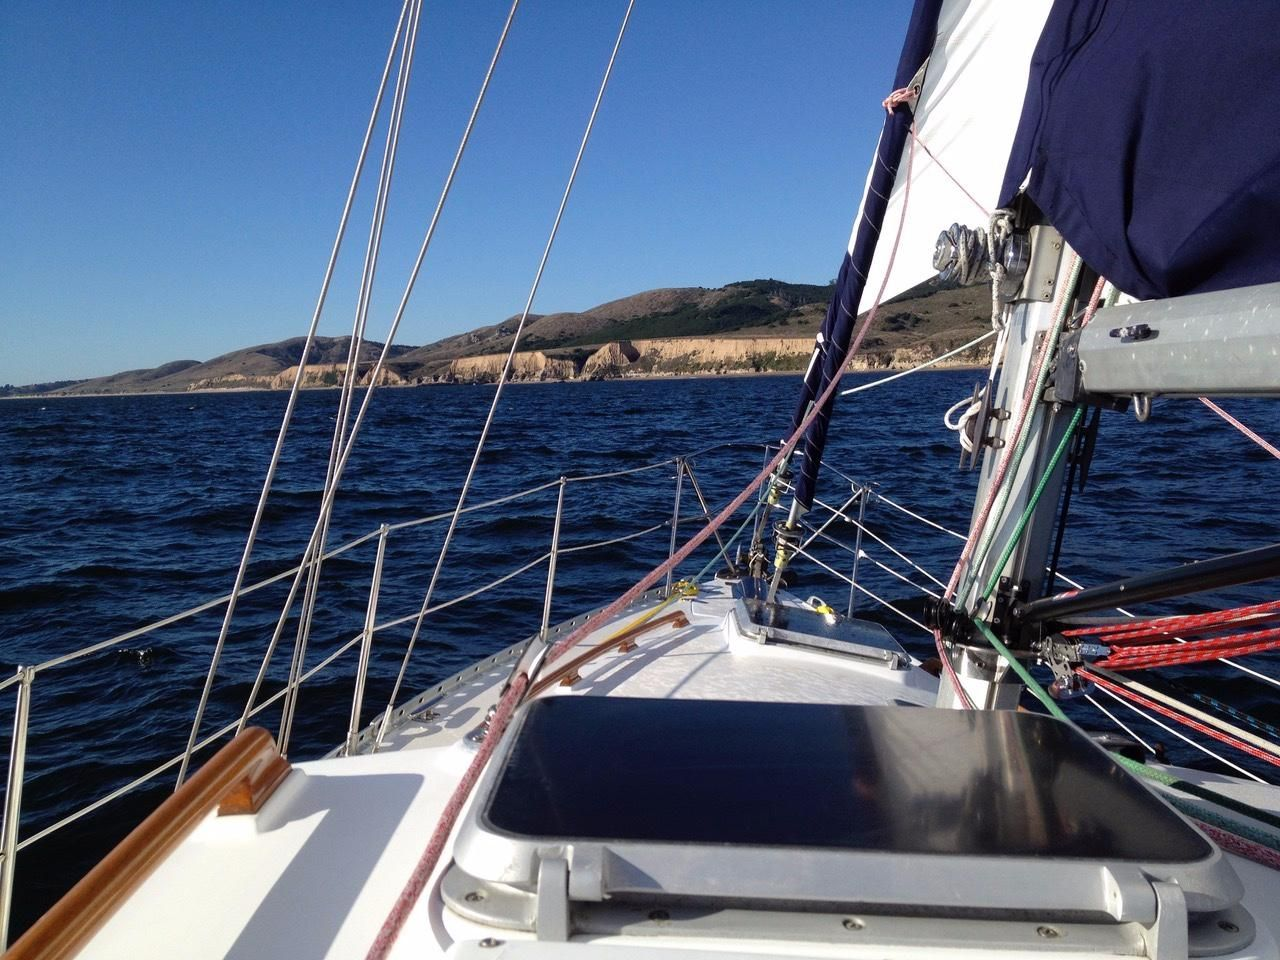 2000 Used Tayana Vancouver Cutter Sailboat For Sale ... Vancouver Sailboat Wiring Diagram on